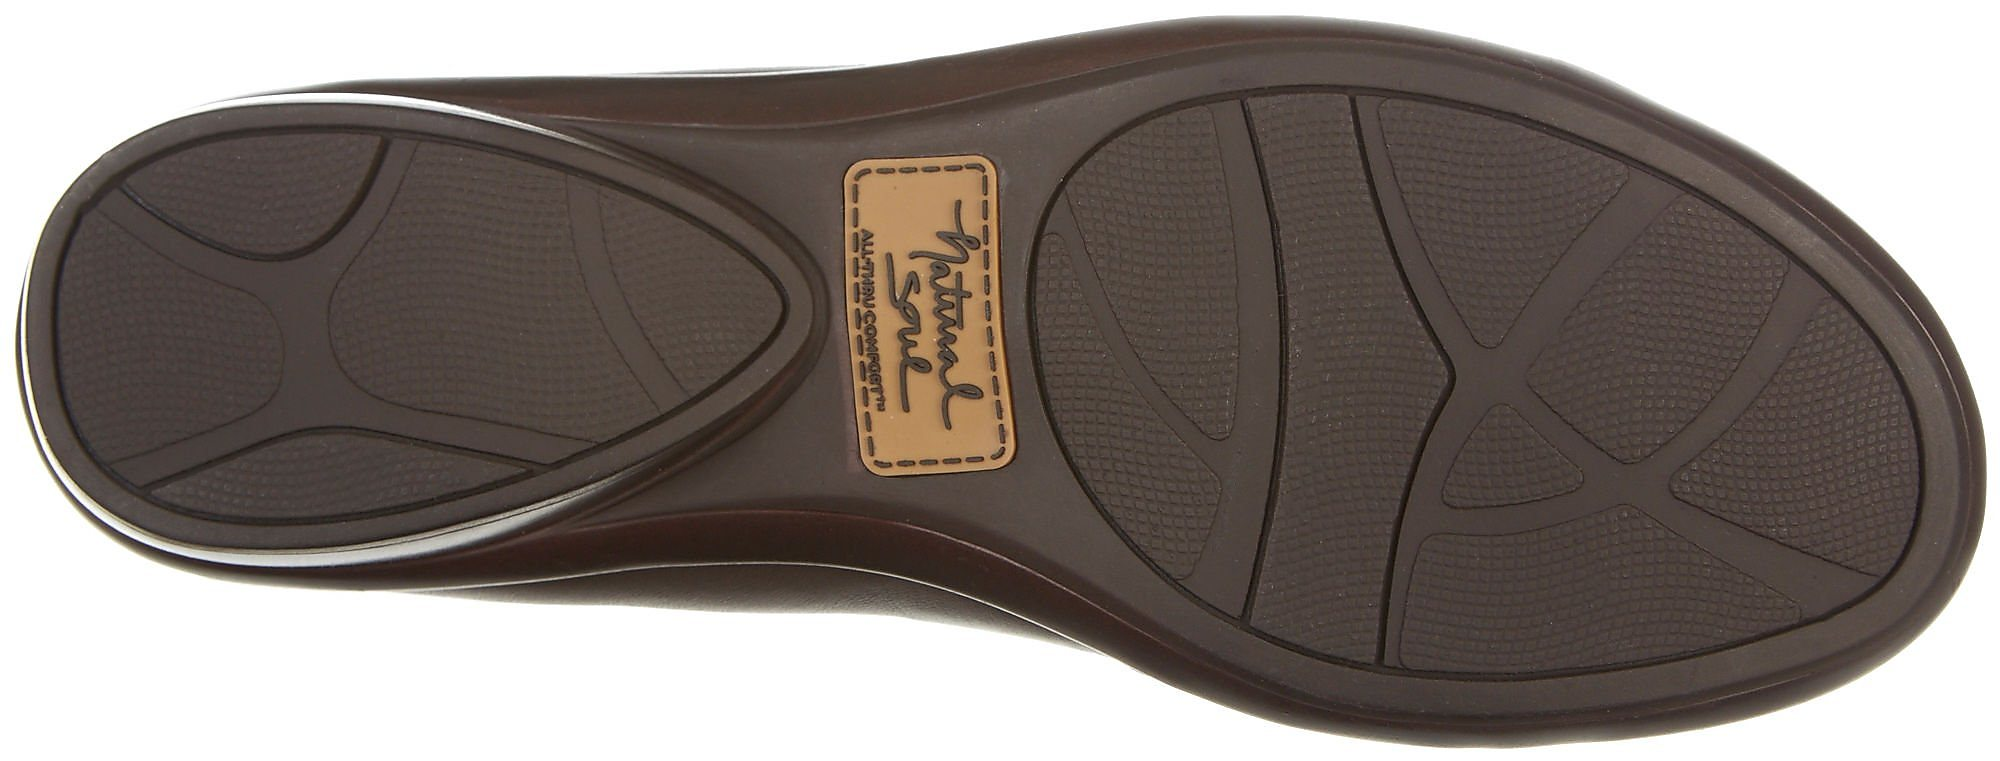 359d45bc3da Naturalizer Womens Carryon Loafers 7w Brown for sale online